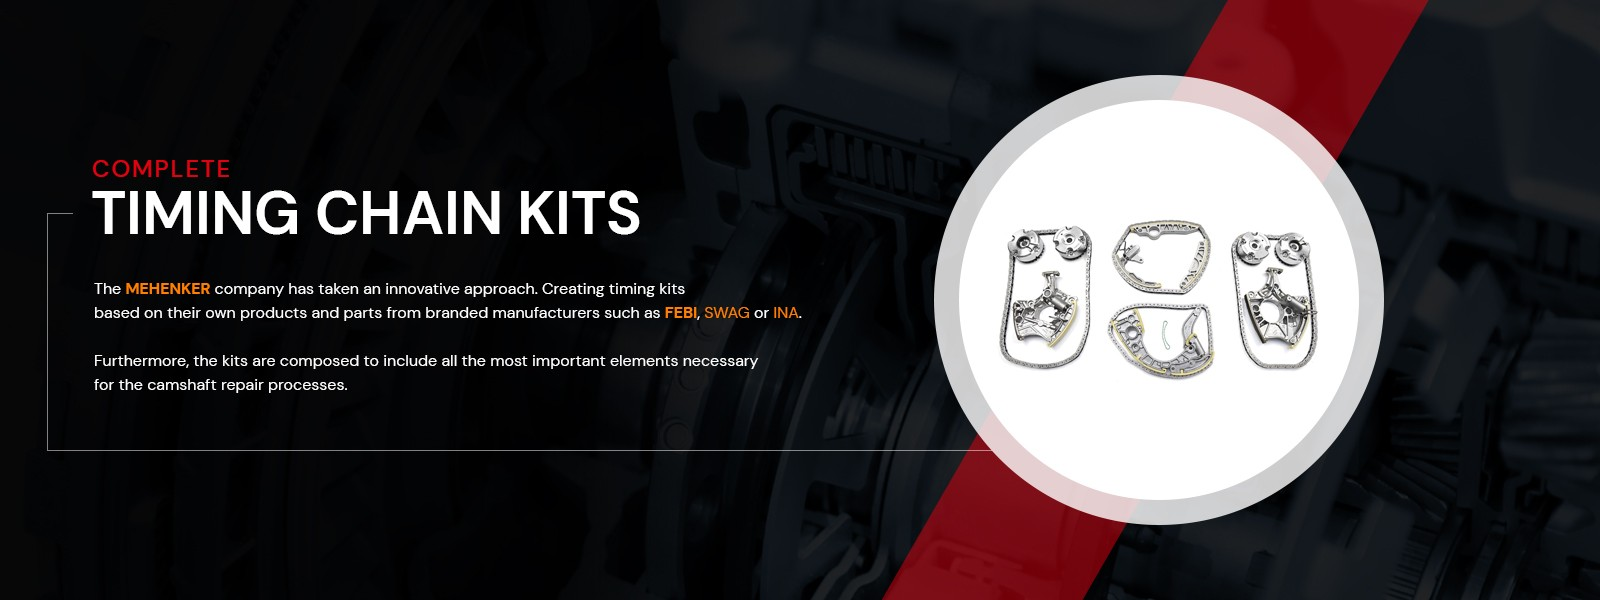 Complete timing chain kits